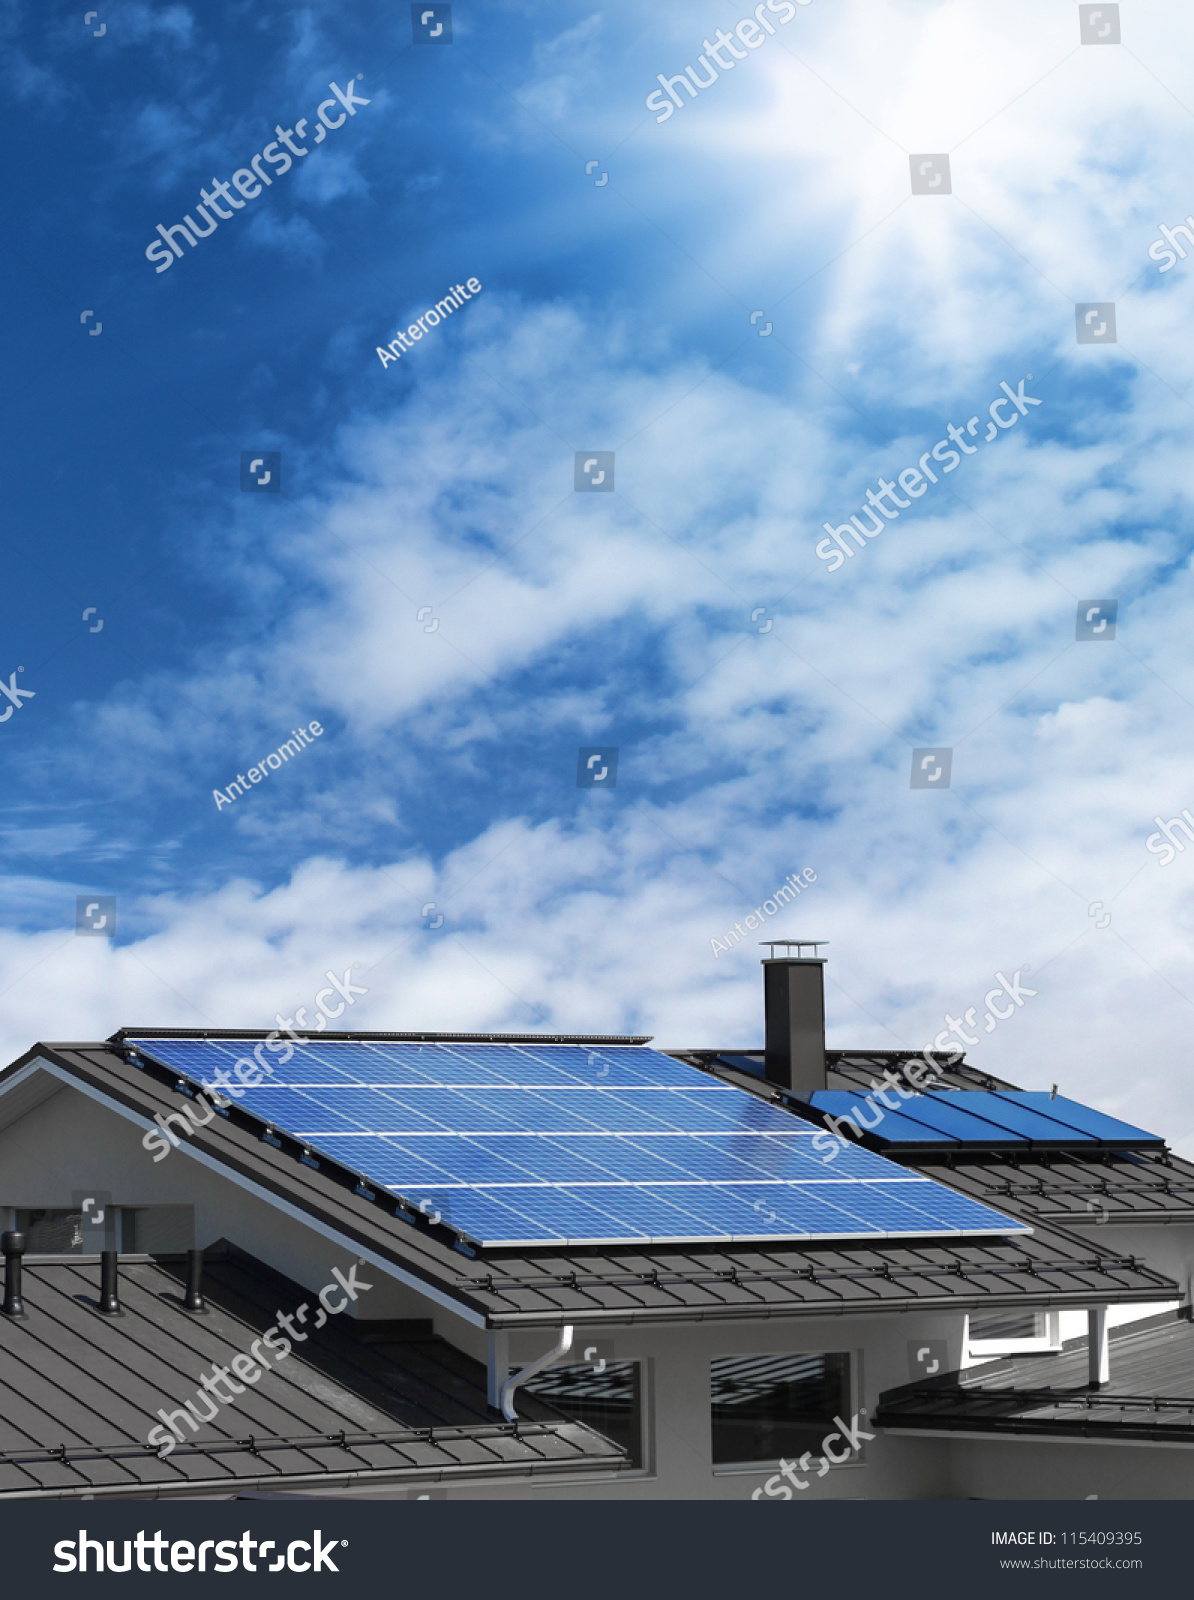 solar panel system on house roof sunny blue sky background